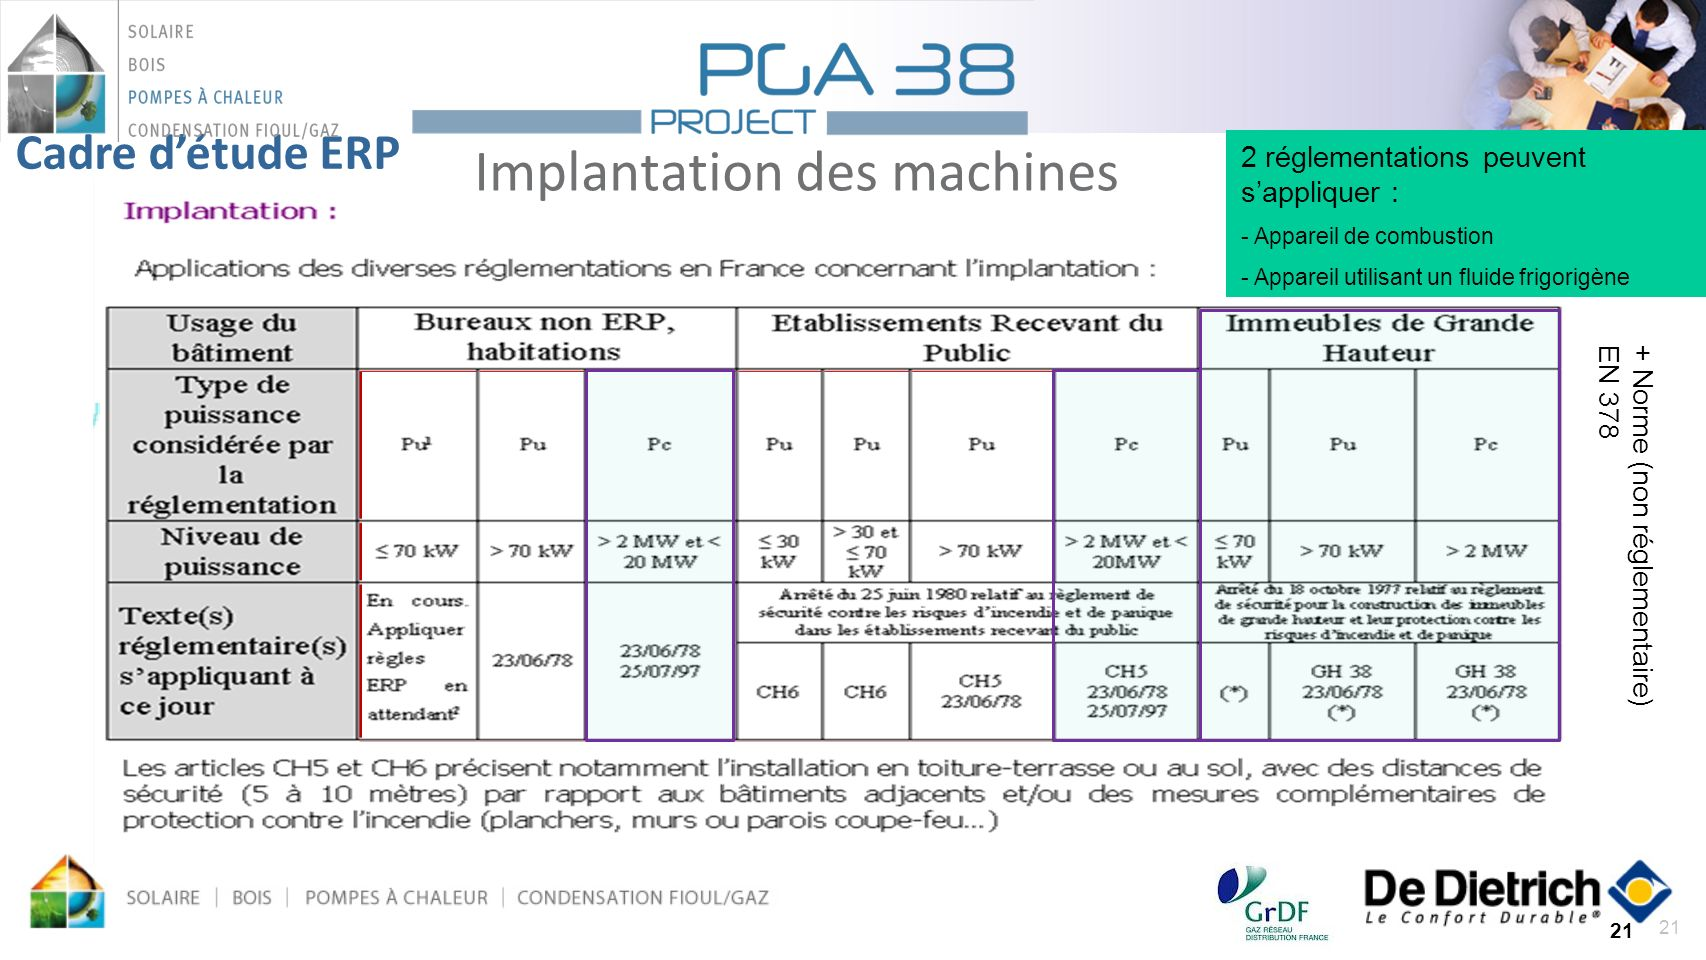 Implantation des machines